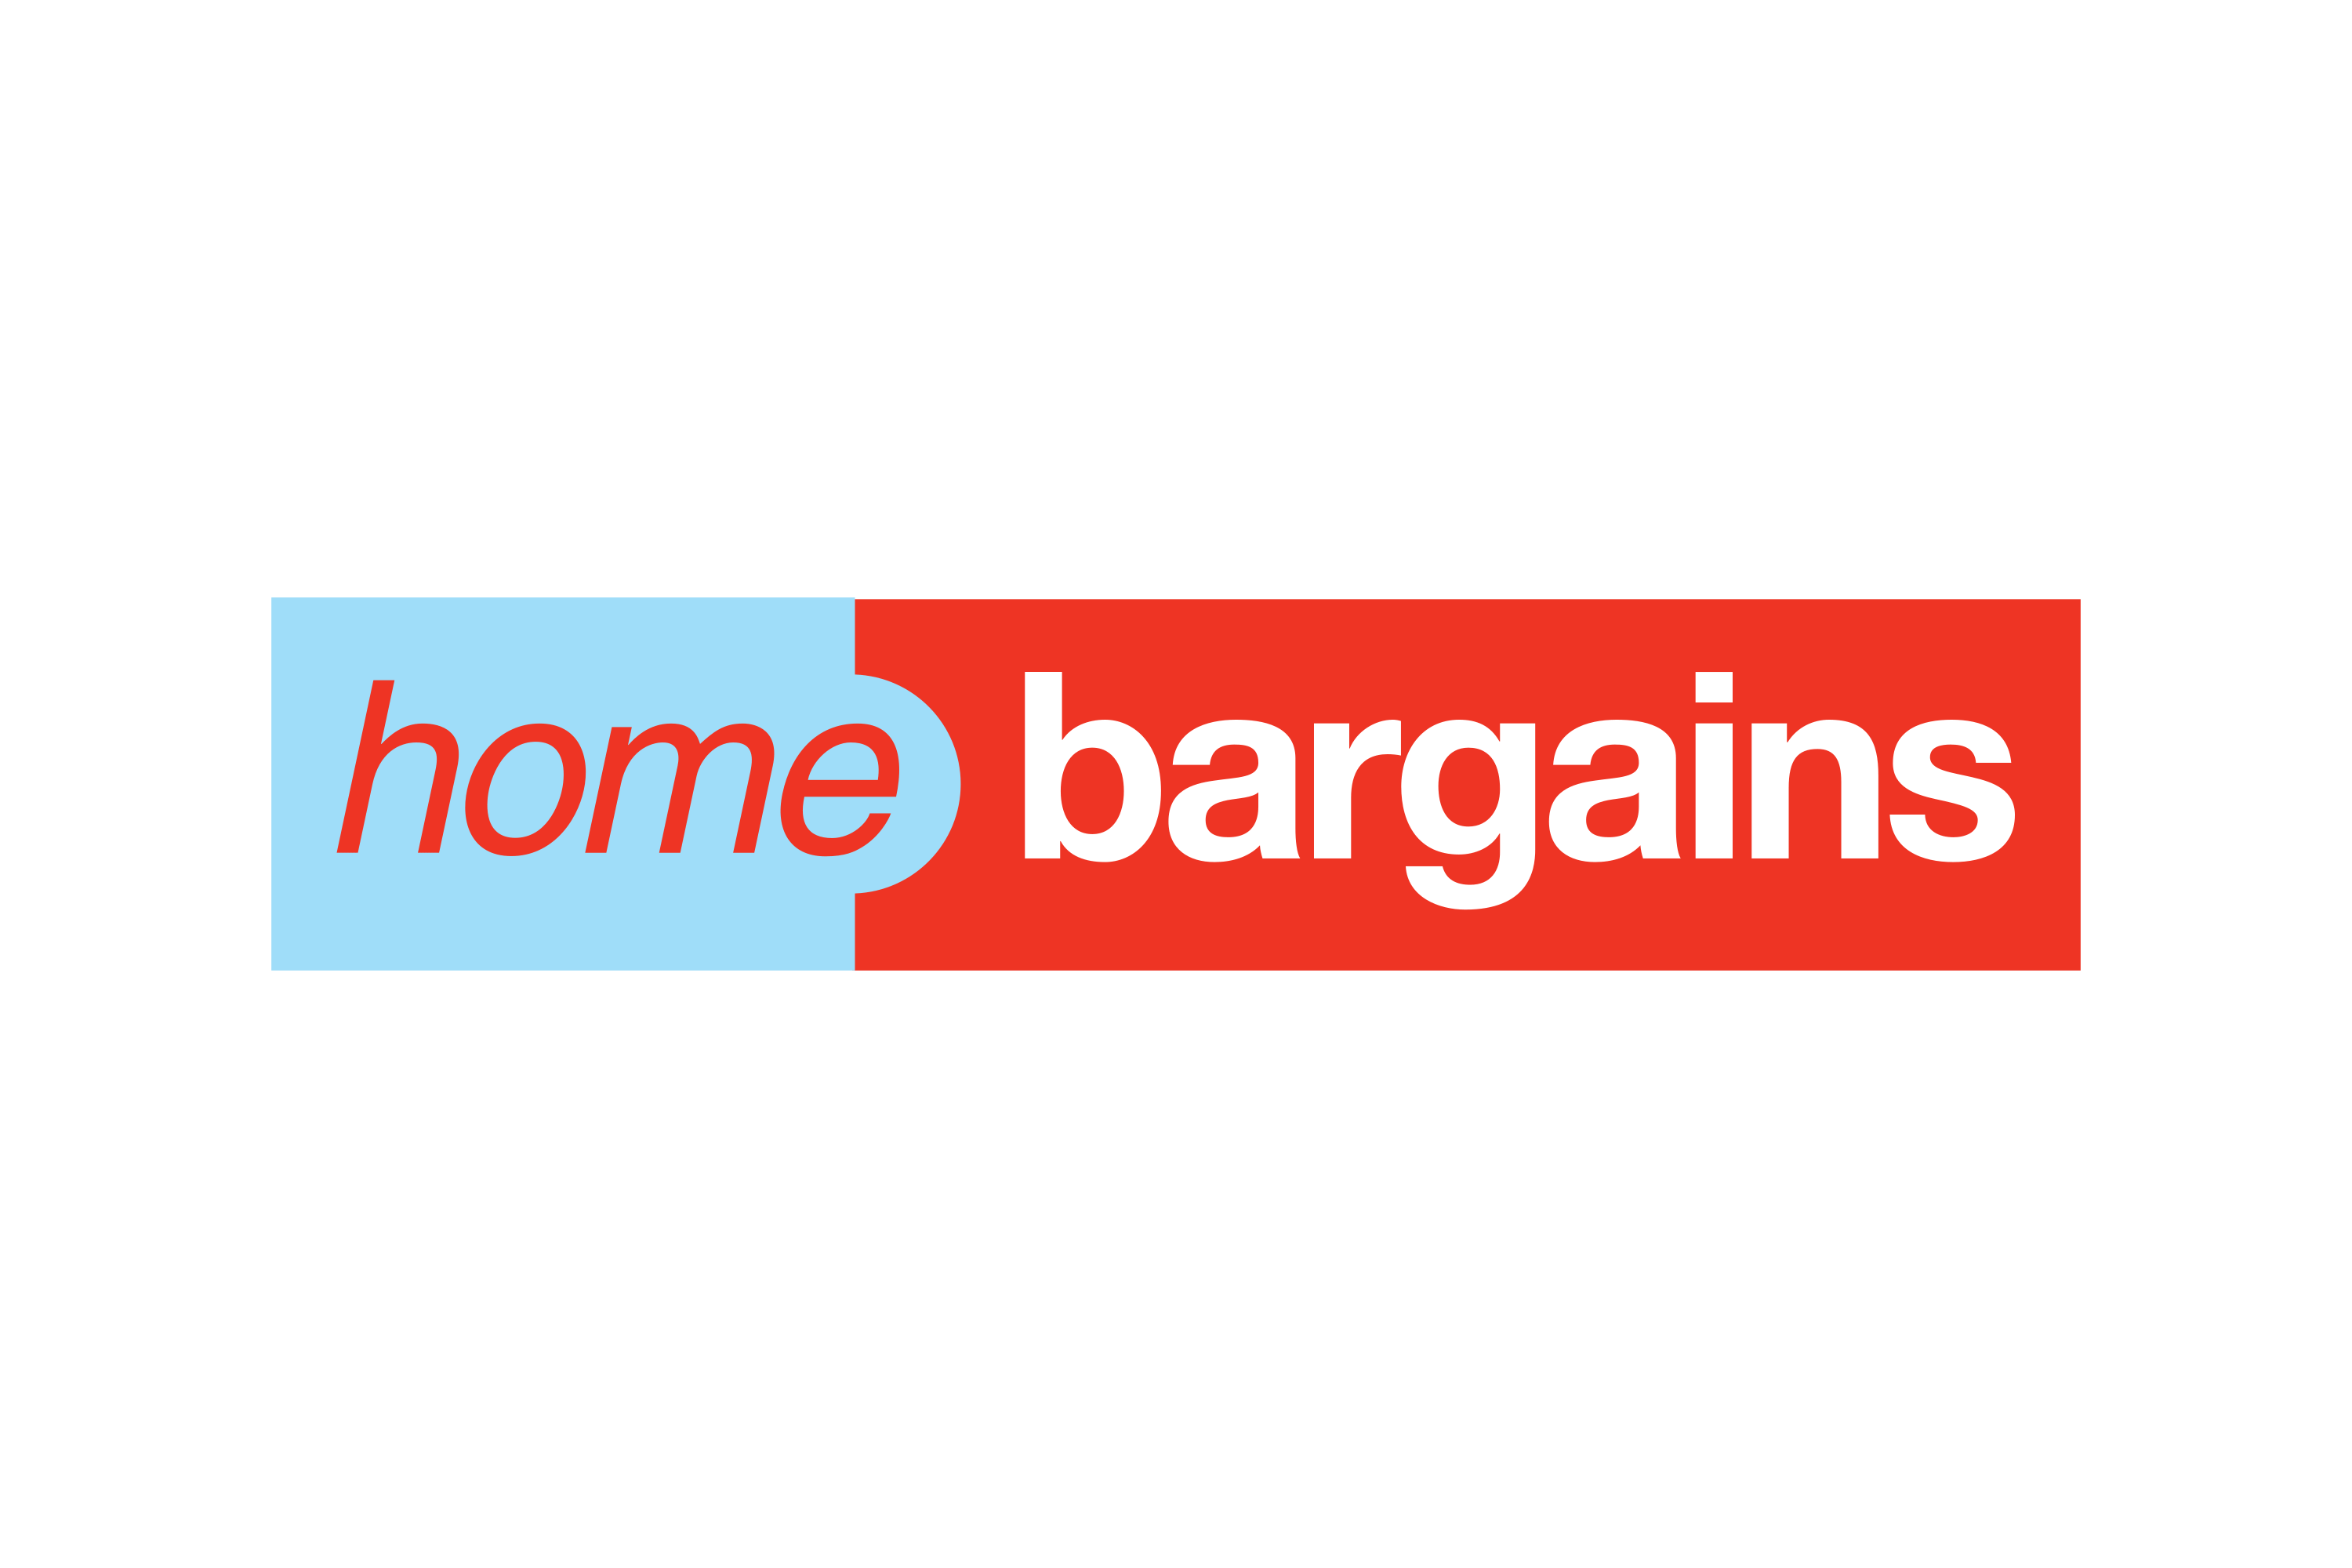 Our Customers - Home Bargains